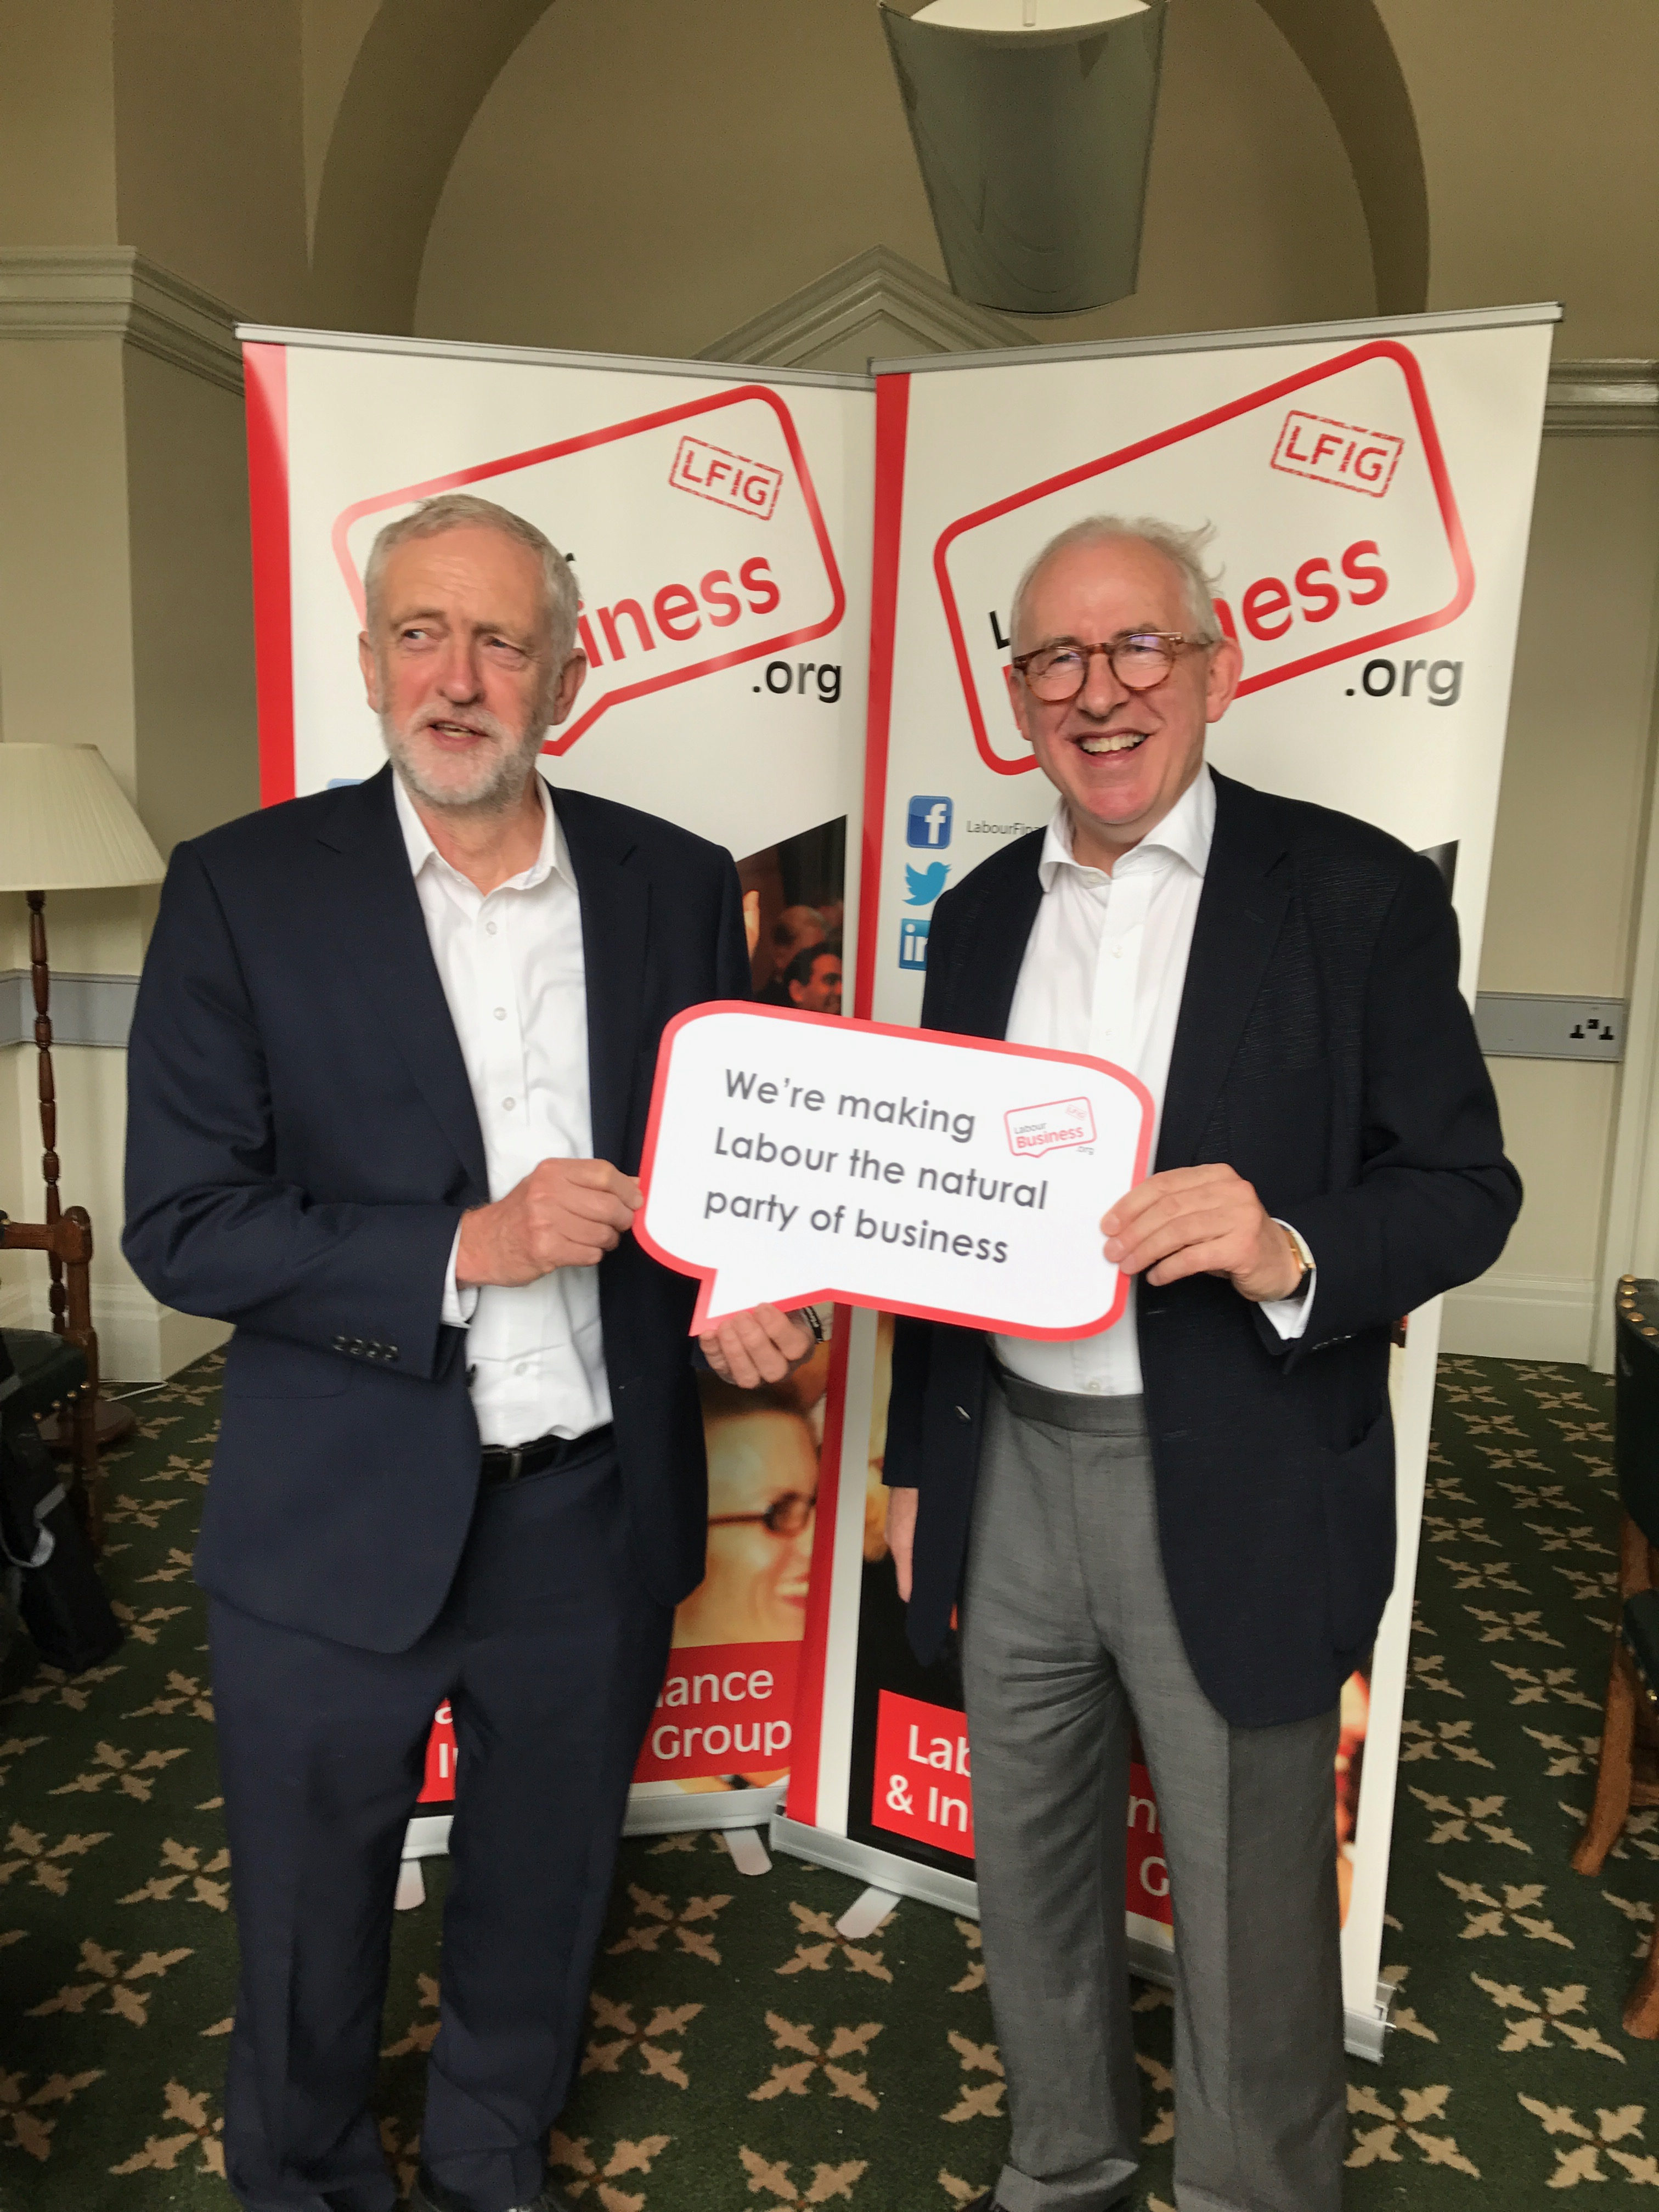 Jeremy Corbyn MP and Hamish Sandison are making Labour the natural party of Business